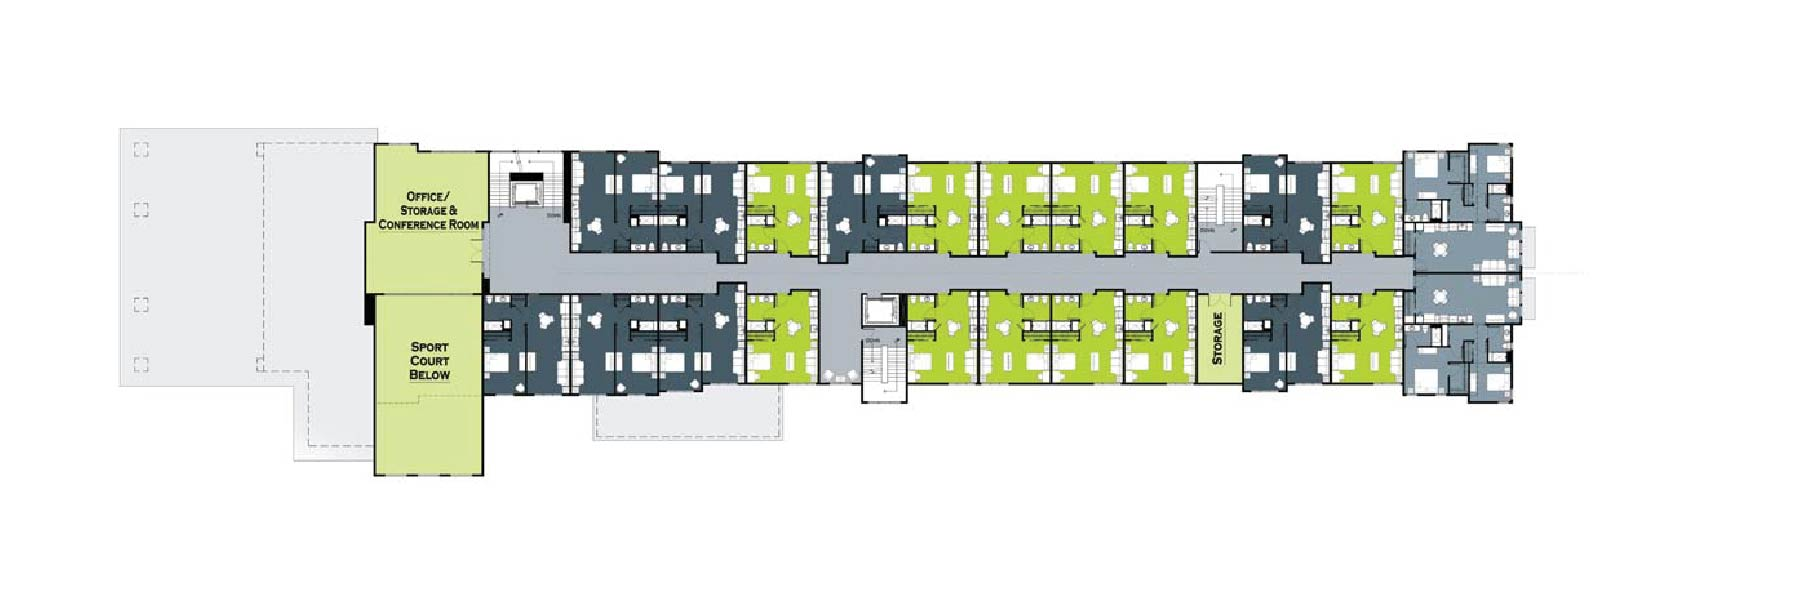 Trailhead Level 2 Floor Plans